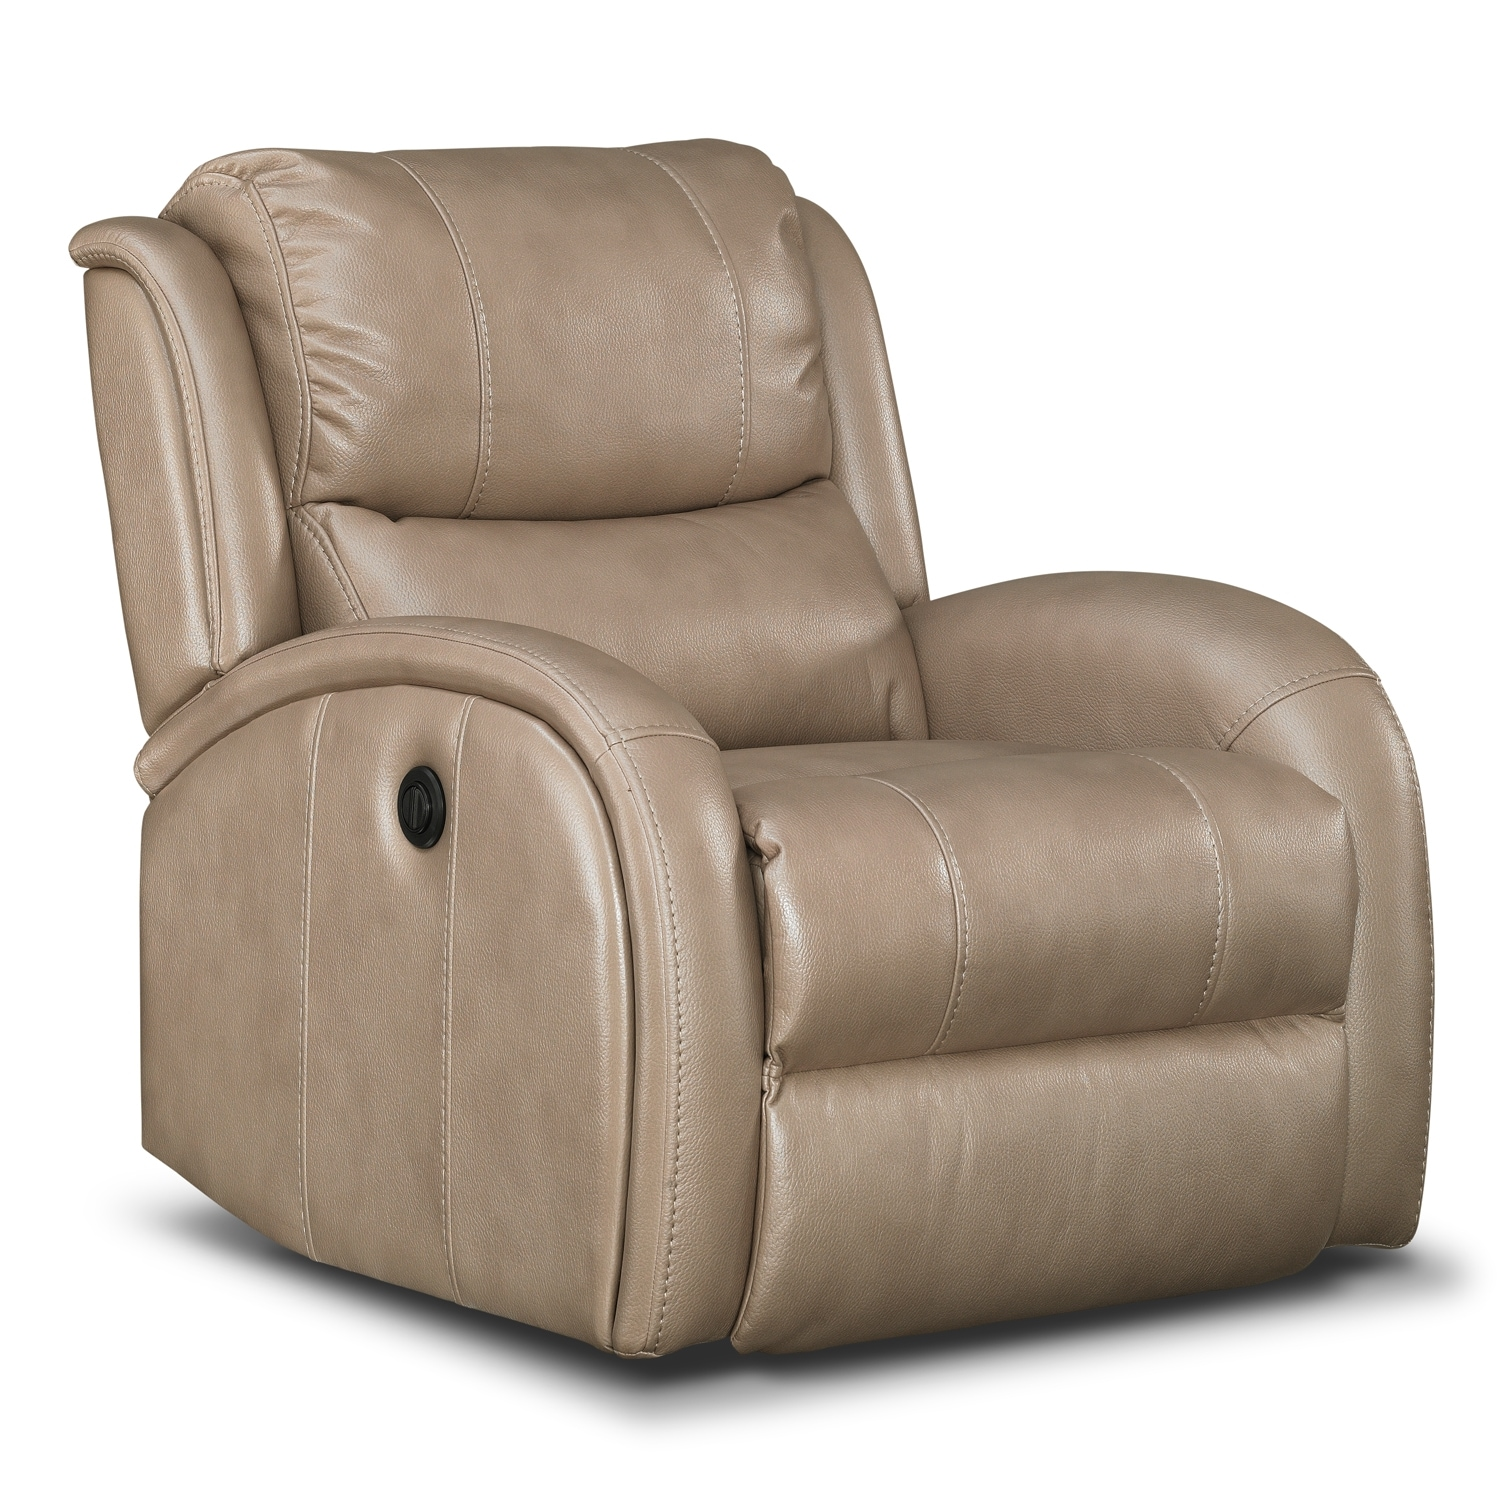 Corsica Power Recliner - Taupe by One80  sc 1 st  Value City Furniture & Corsica Power Recliner - Taupe | Value City Furniture islam-shia.org